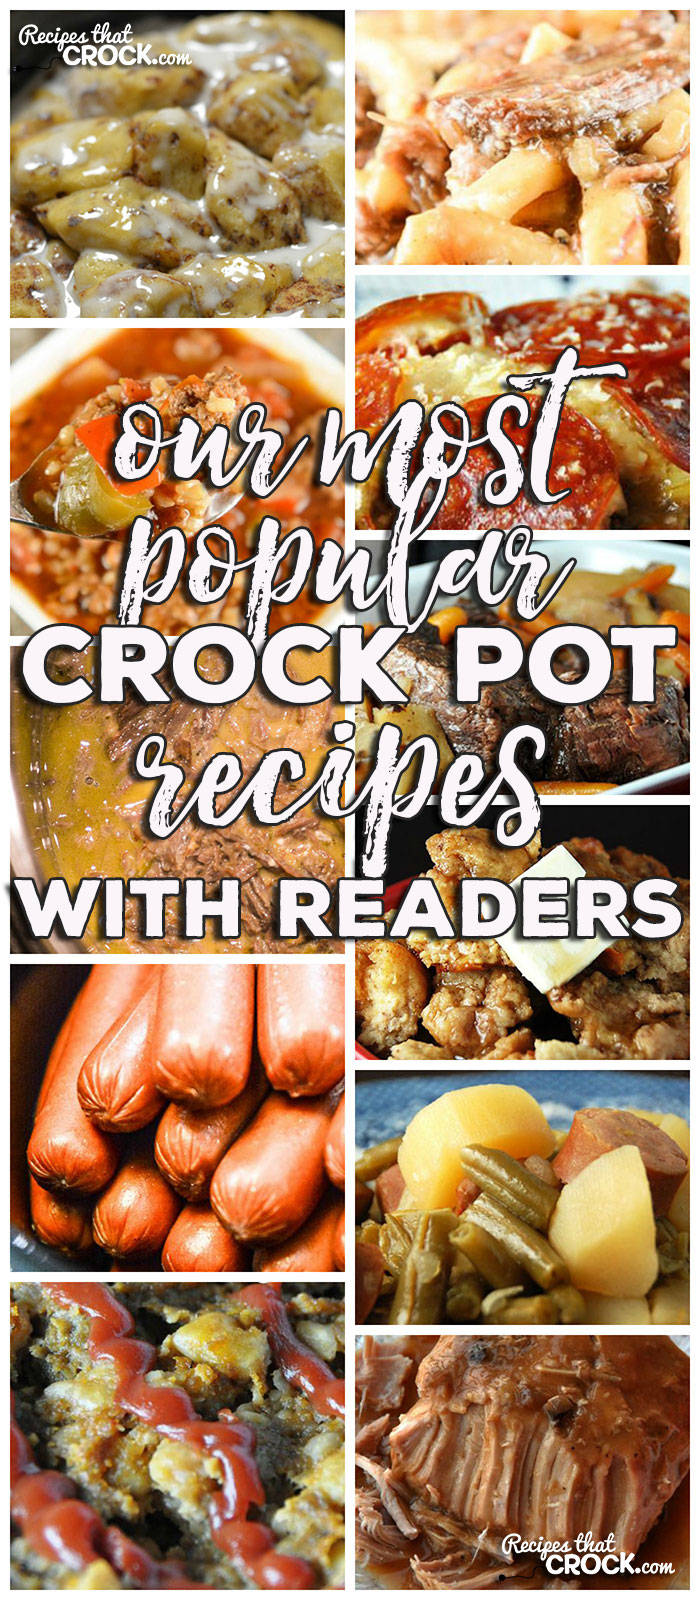 This week for our Friday Favorites we have Our Most Popular Crock Pot Recipes with Our Readers like Cooking Hot Dogs in Bulk in a Crock Pot, Slow Cooker Beef Noodles, Crock Pot Ham Broccoli Cheese Casserole, Slow Cooker French Toast Casserole, Creamy Mississippi Instant Pot Roast, Crock Pot Old Fashioned Meatloaf, Crock Pot Mississippi Chicken Thighs, Crock Pot Bourbon Chicken, Crock Pot Chicken and Stuffing Casserole, Crock Pot Crustless Pizza, Crock Pot Pork Loin with Gravy, Crock Pot Chicken Drumsticks, Slow Cooker Stuffed Green Pepper Soup, Crock Pot Cinnamon Roll Casserole, The Perfect Crock Pot Roast and Crock Pot Sausage, Green Beans and Potatoes.